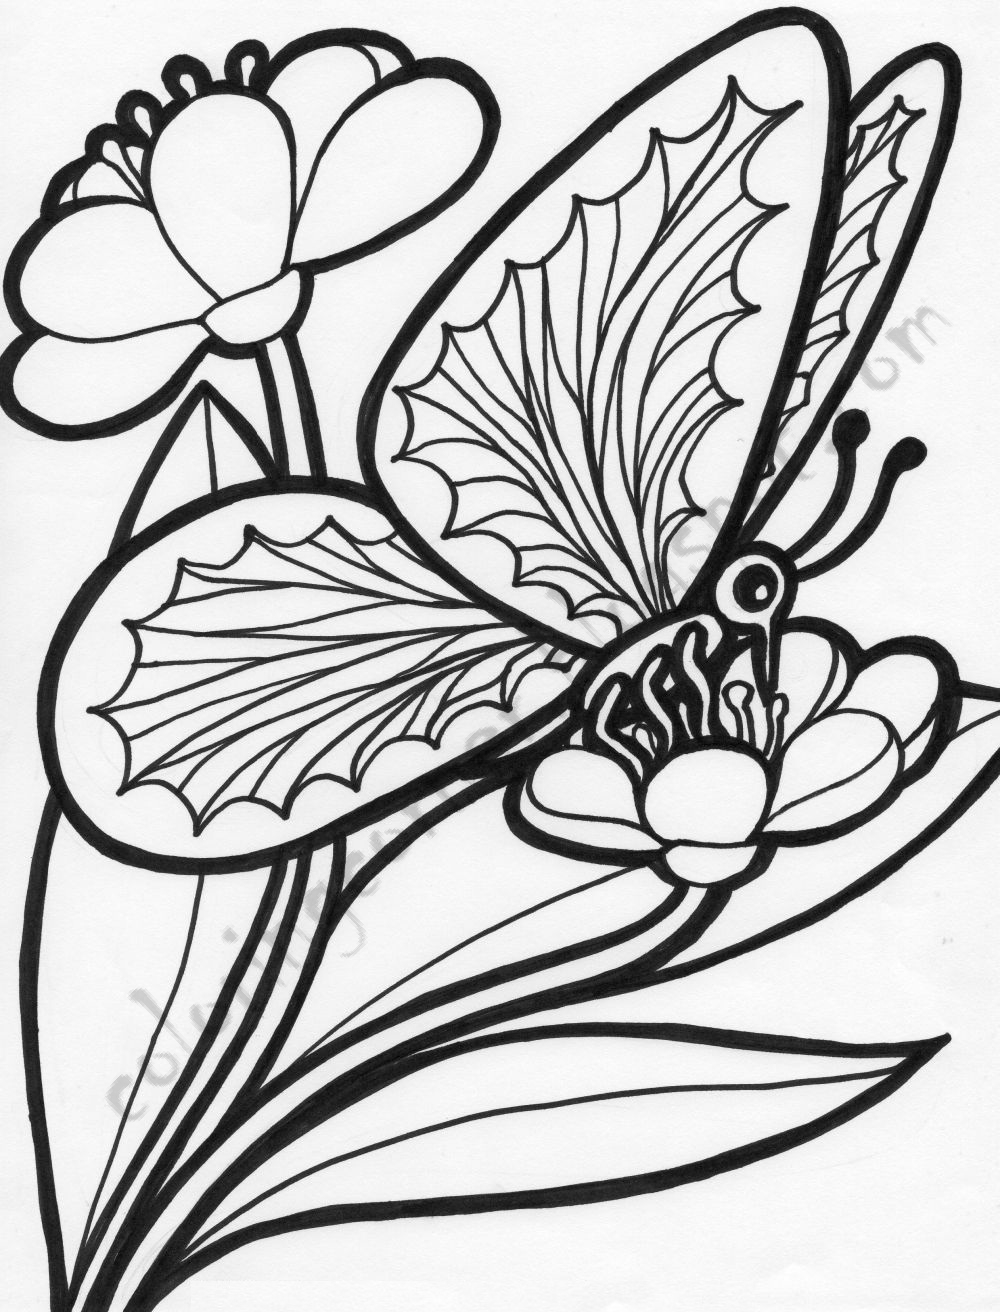 coloring pages butterfly butterflies to color for kids butterflies kids coloring pages butterfly coloring